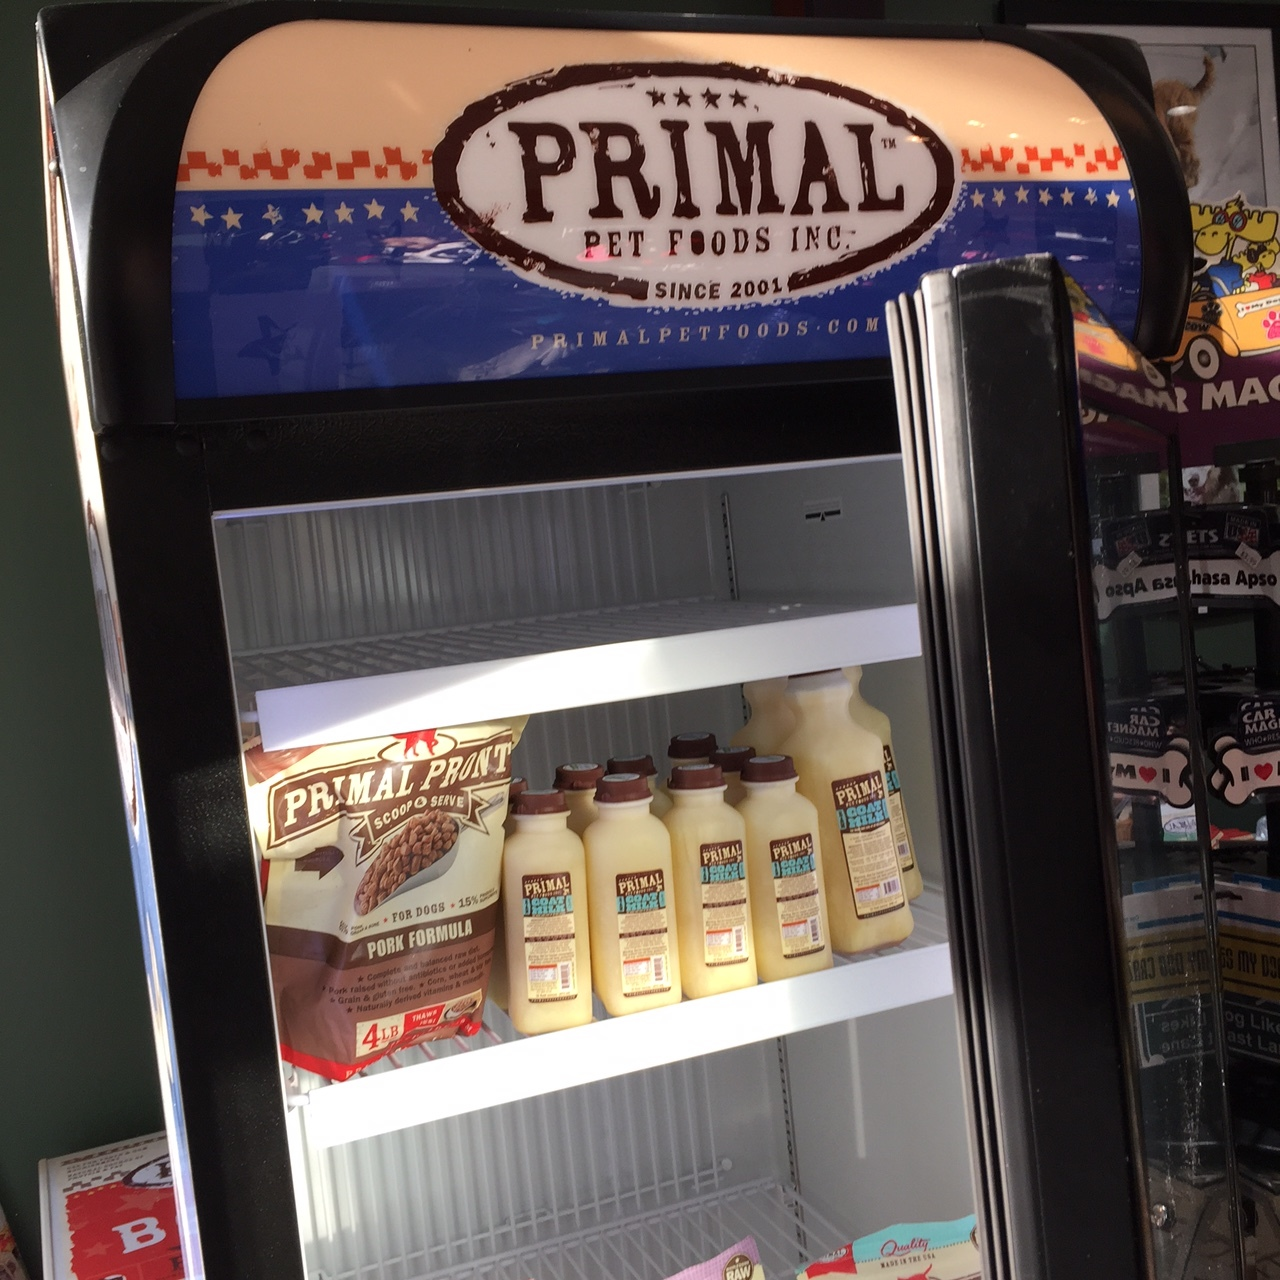 The new Primal refrigerator for a larger raw food selection.